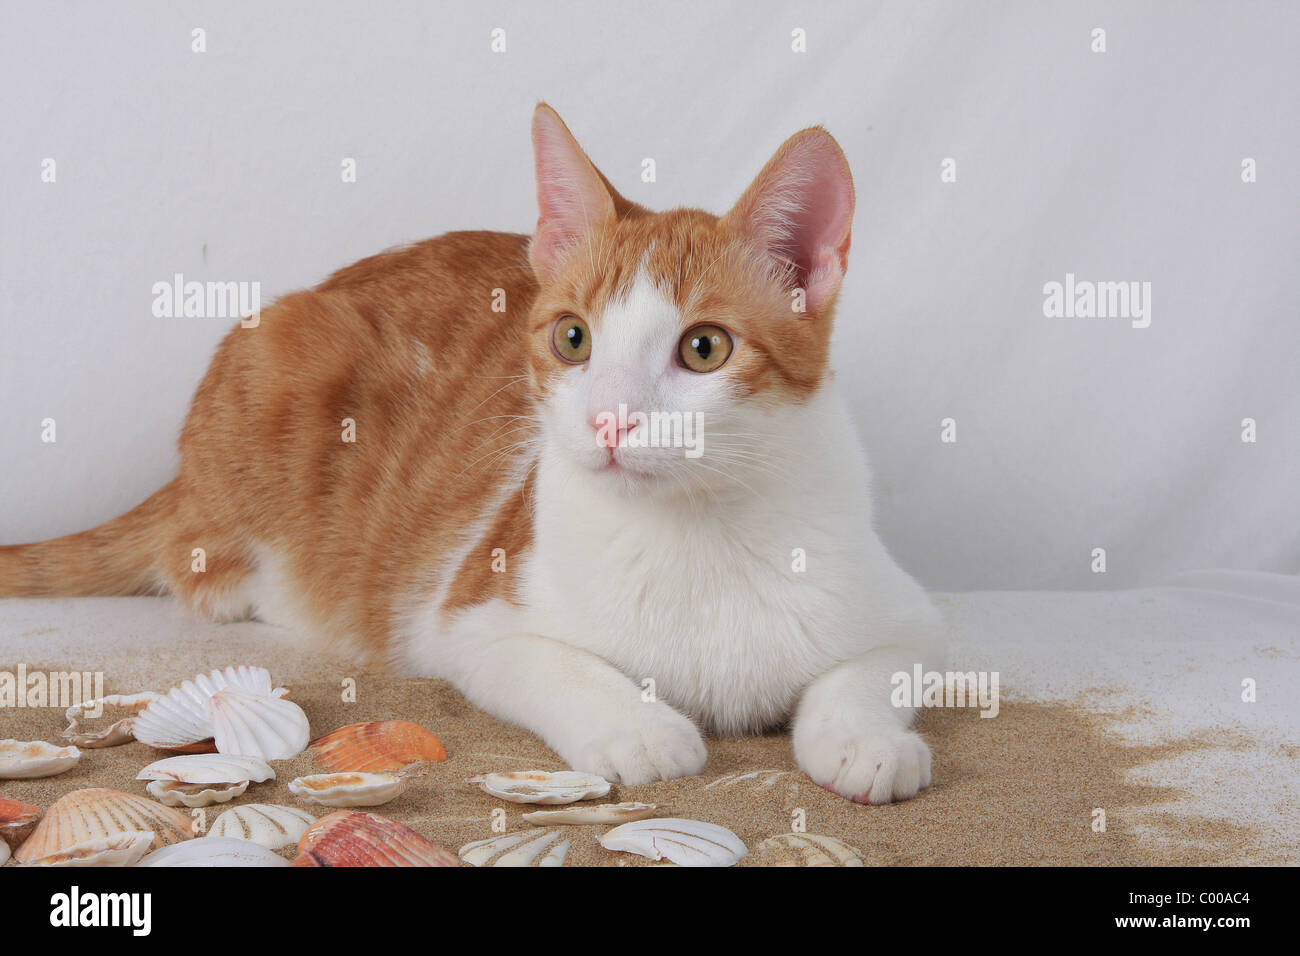 Hauskatze, mit sommerlicher Dekoration, Felis silvestris forma catus, Domestic-cat, with summerly decoration - Stock Image